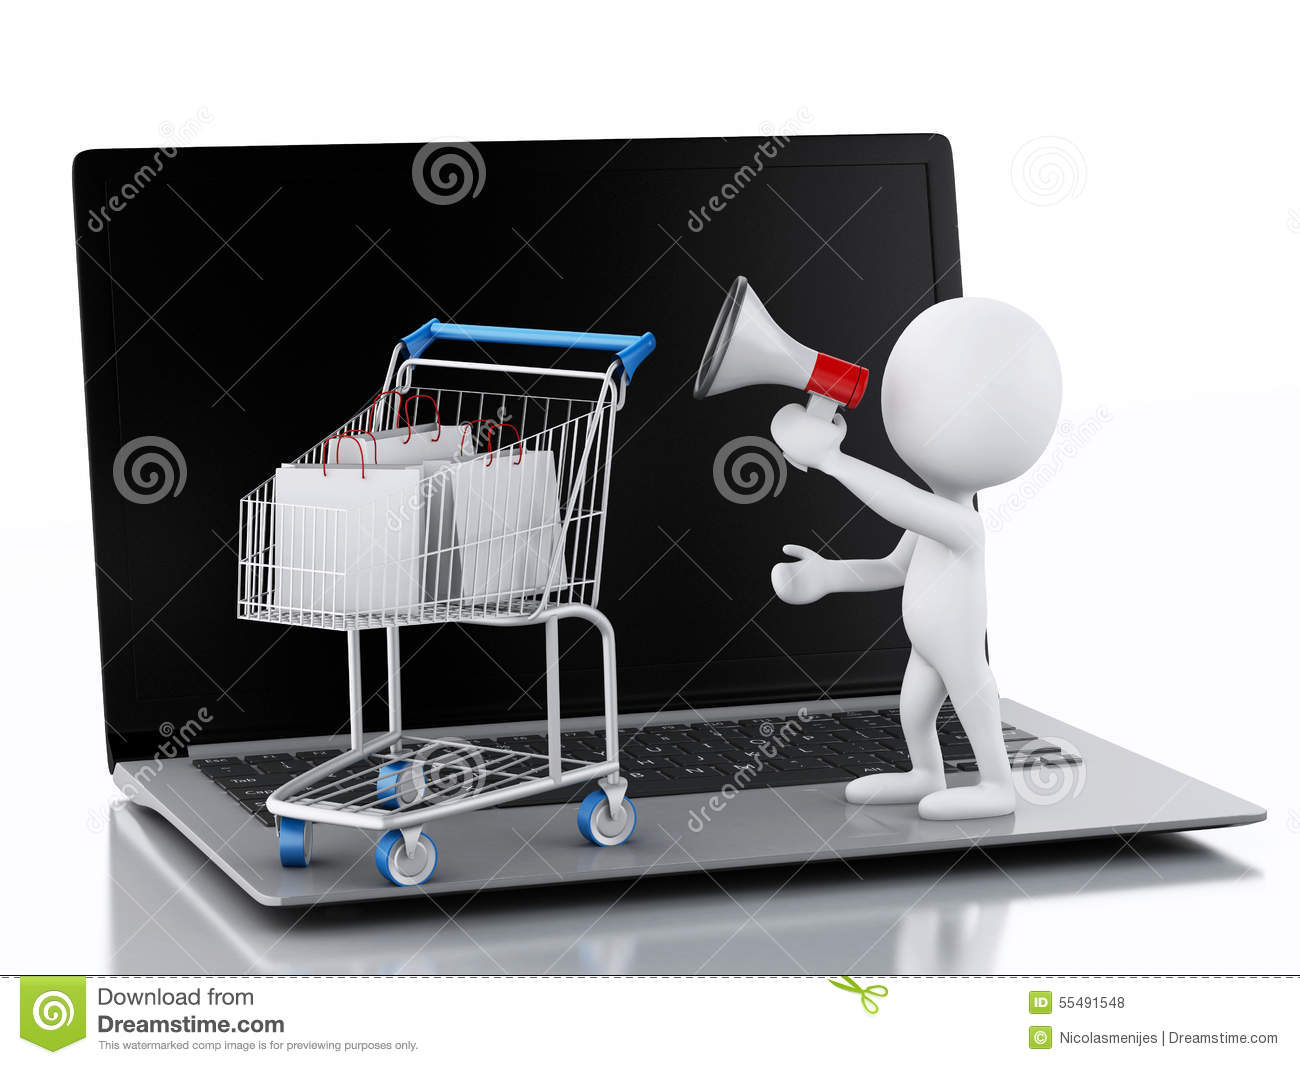 Notebook online shopping